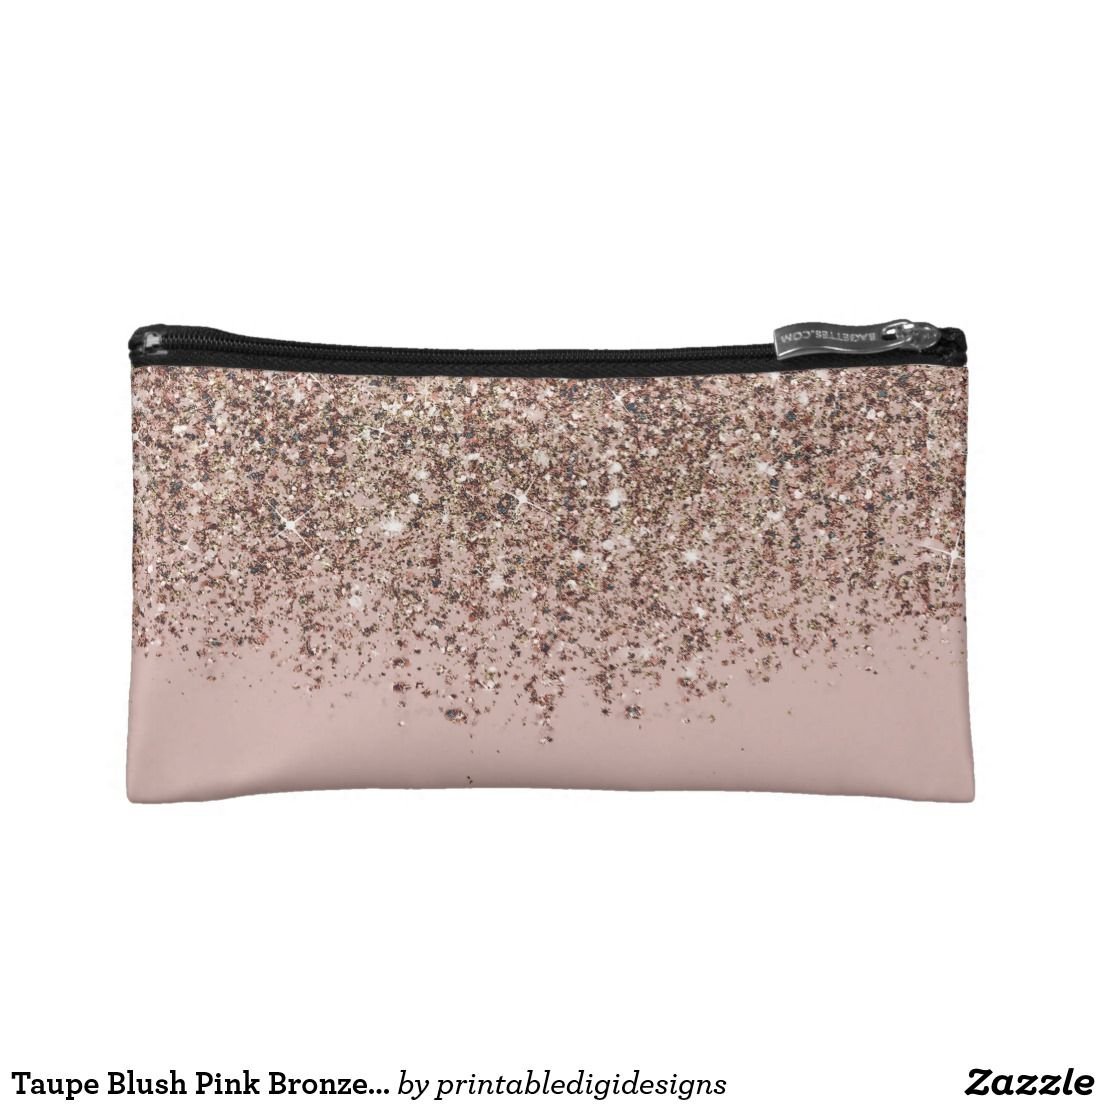 Taupe Blush Pink Bronze Rose Gold Glitter Glam Cosmetic